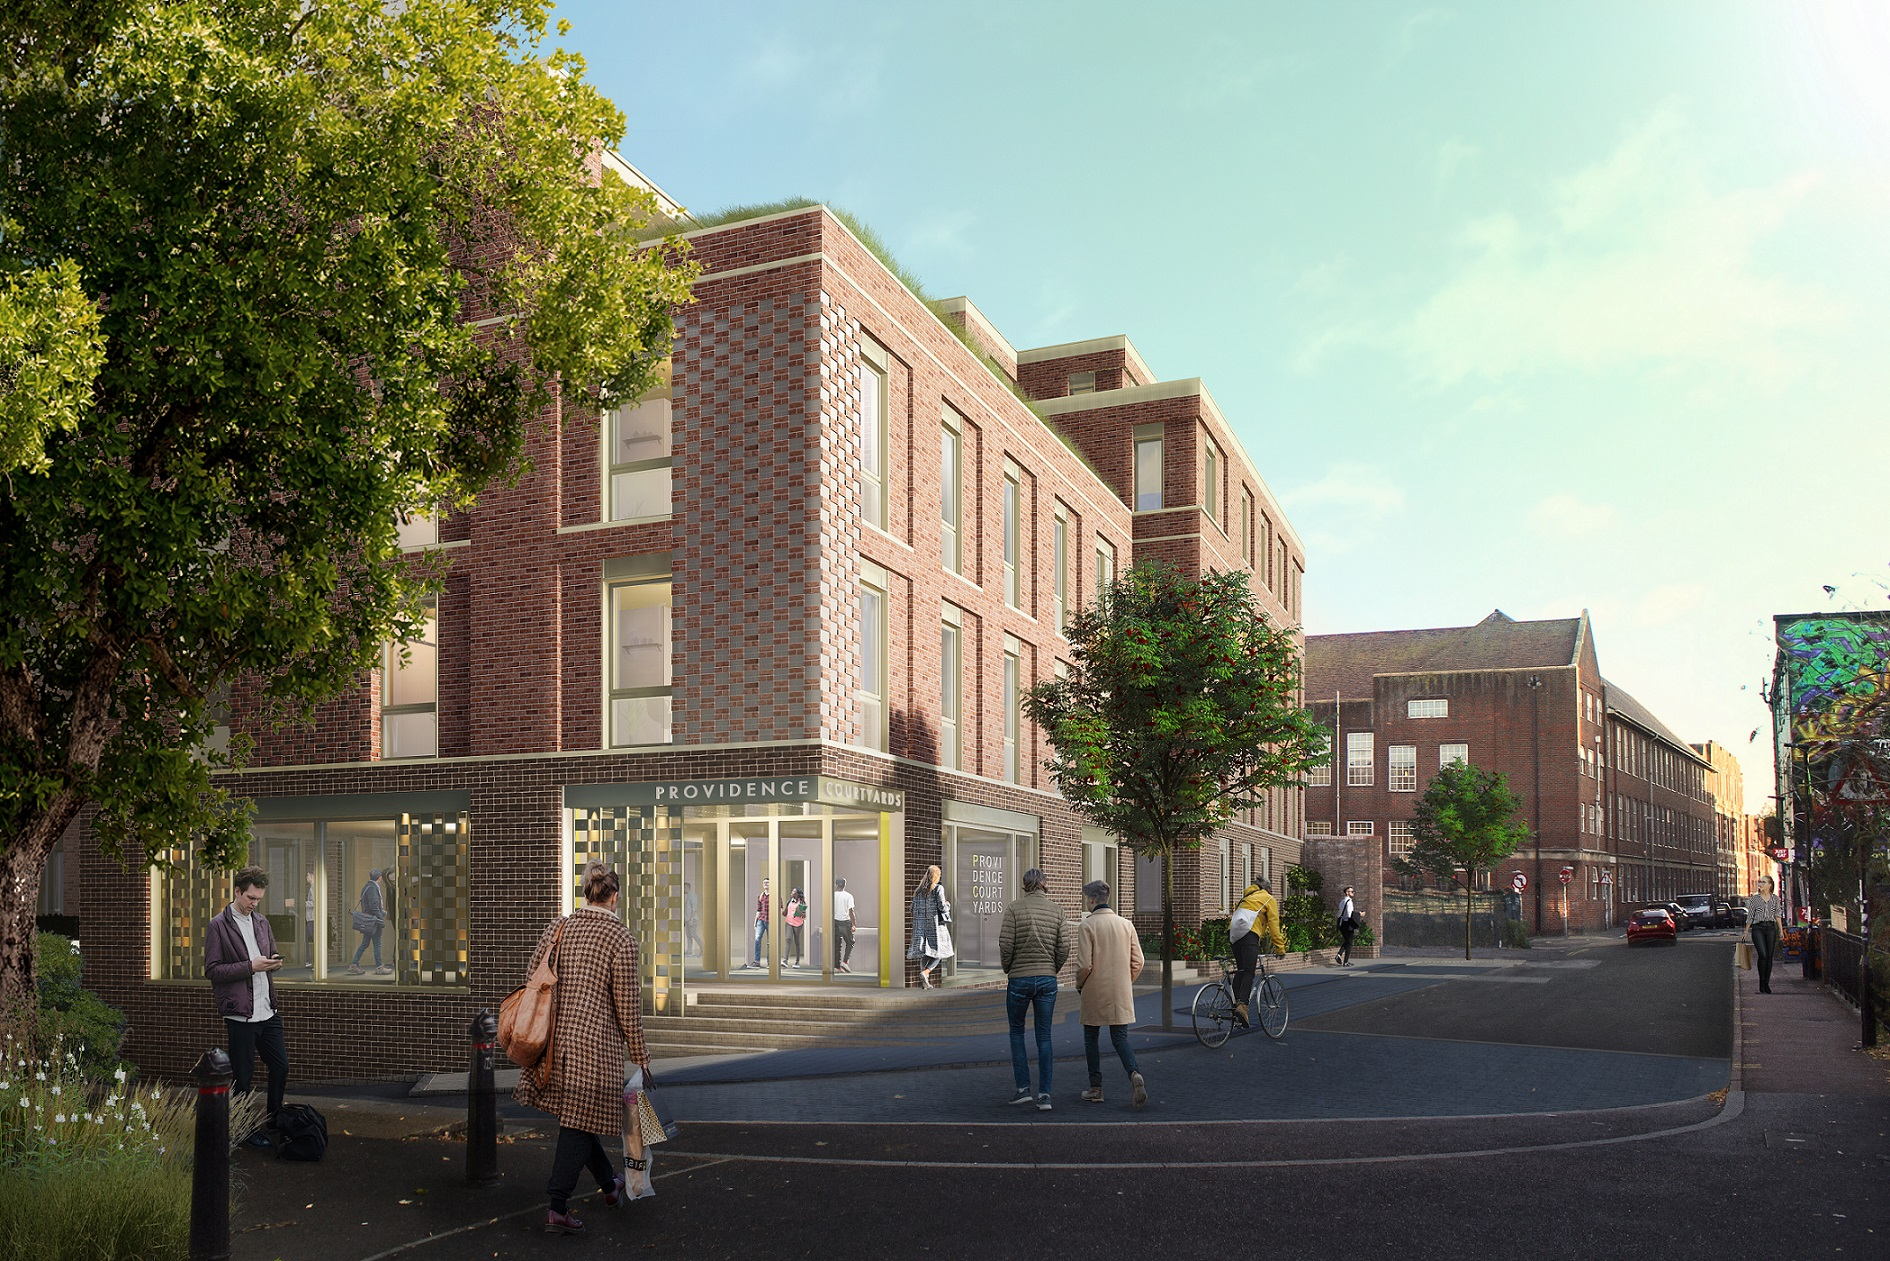 Plans Revealed for Regeneration Development in Brighton